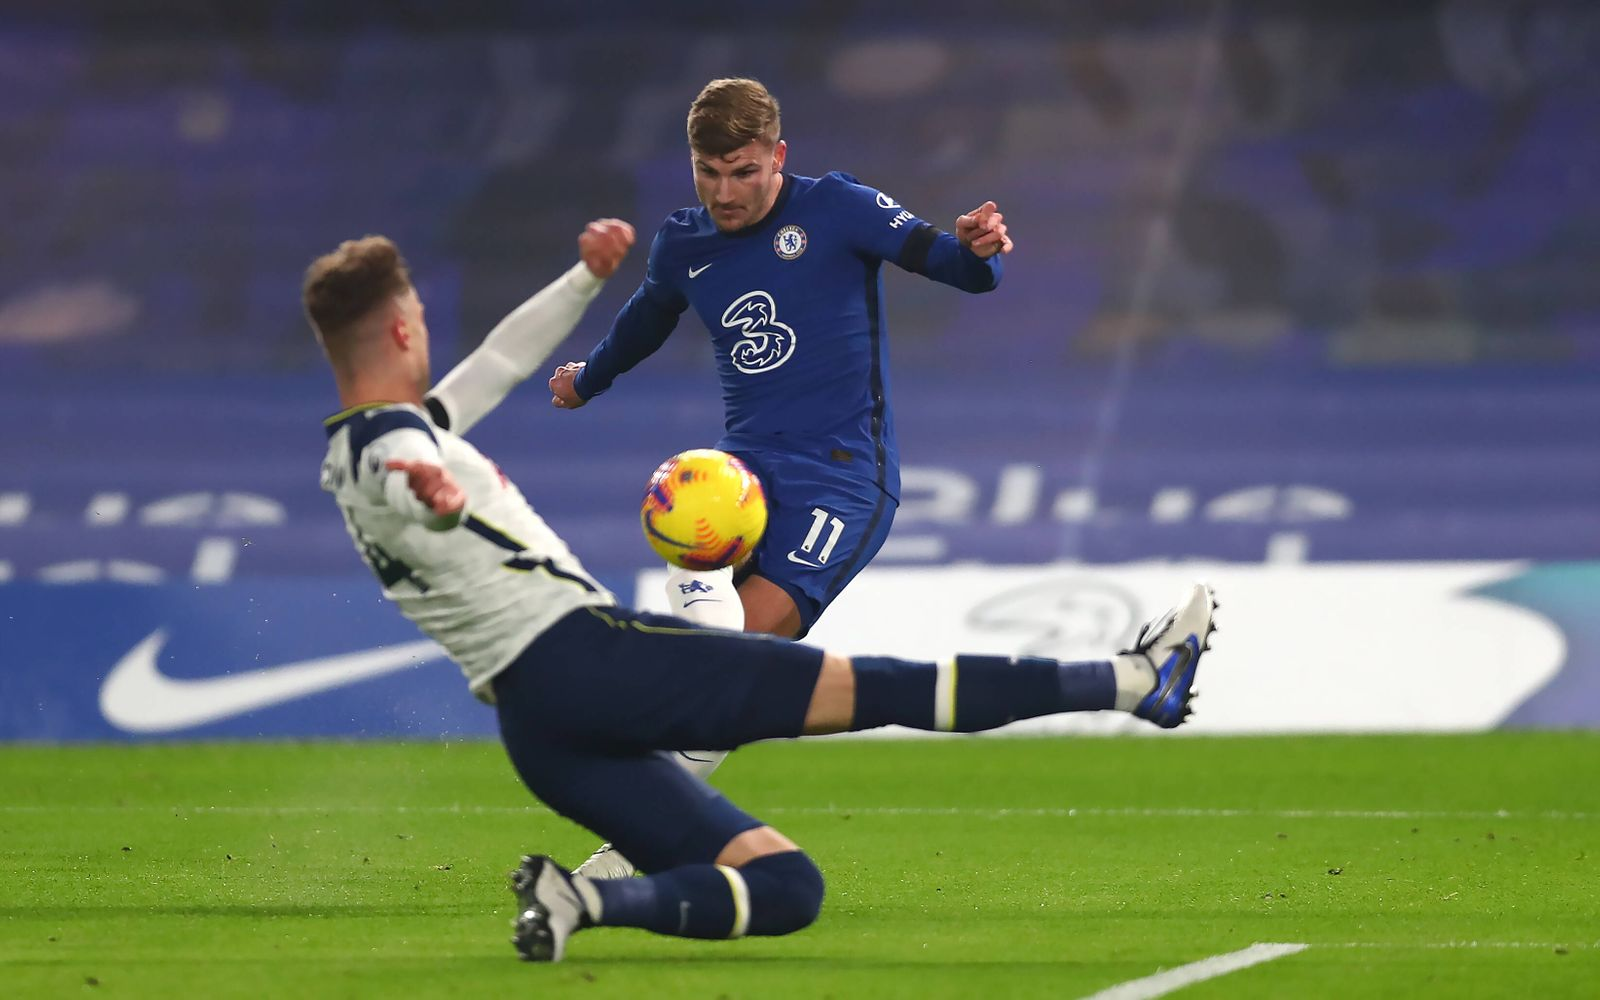 Chelsea v Tottenham Hotspur - Premier League - Stamford Bridge Chelsea s Timo Werner converts but the goal is ruled out